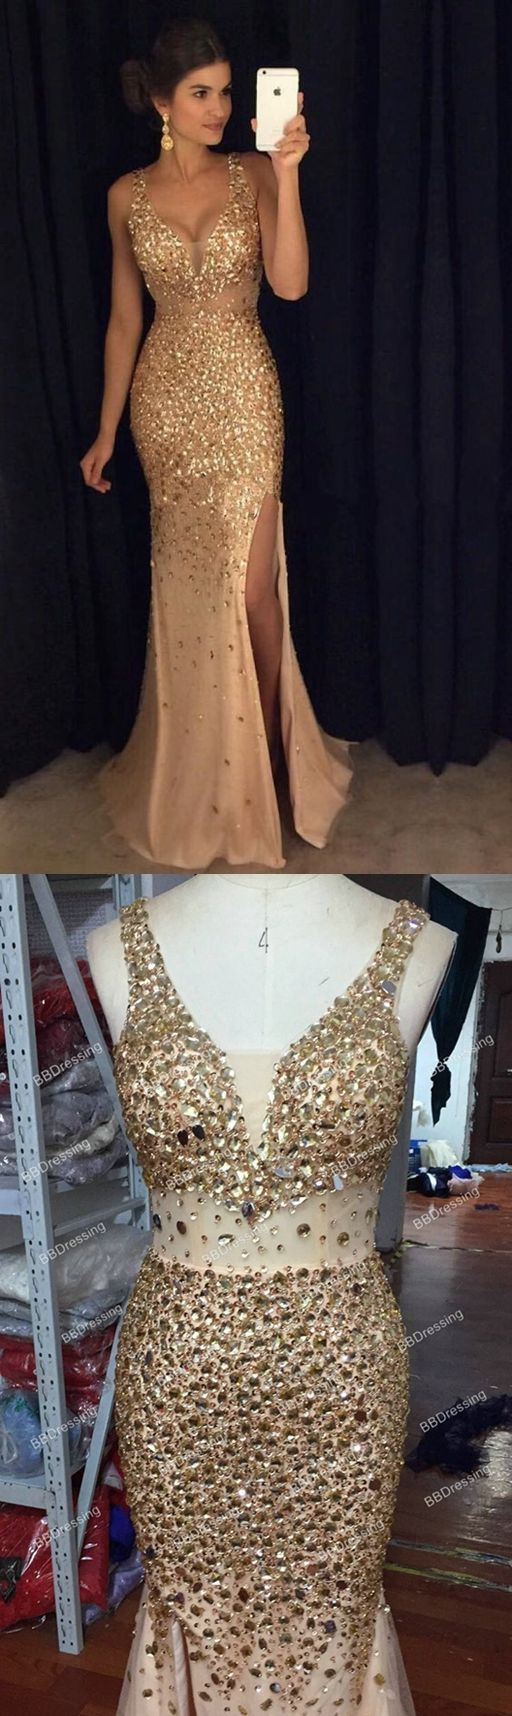 Prom dress cocktail 2018